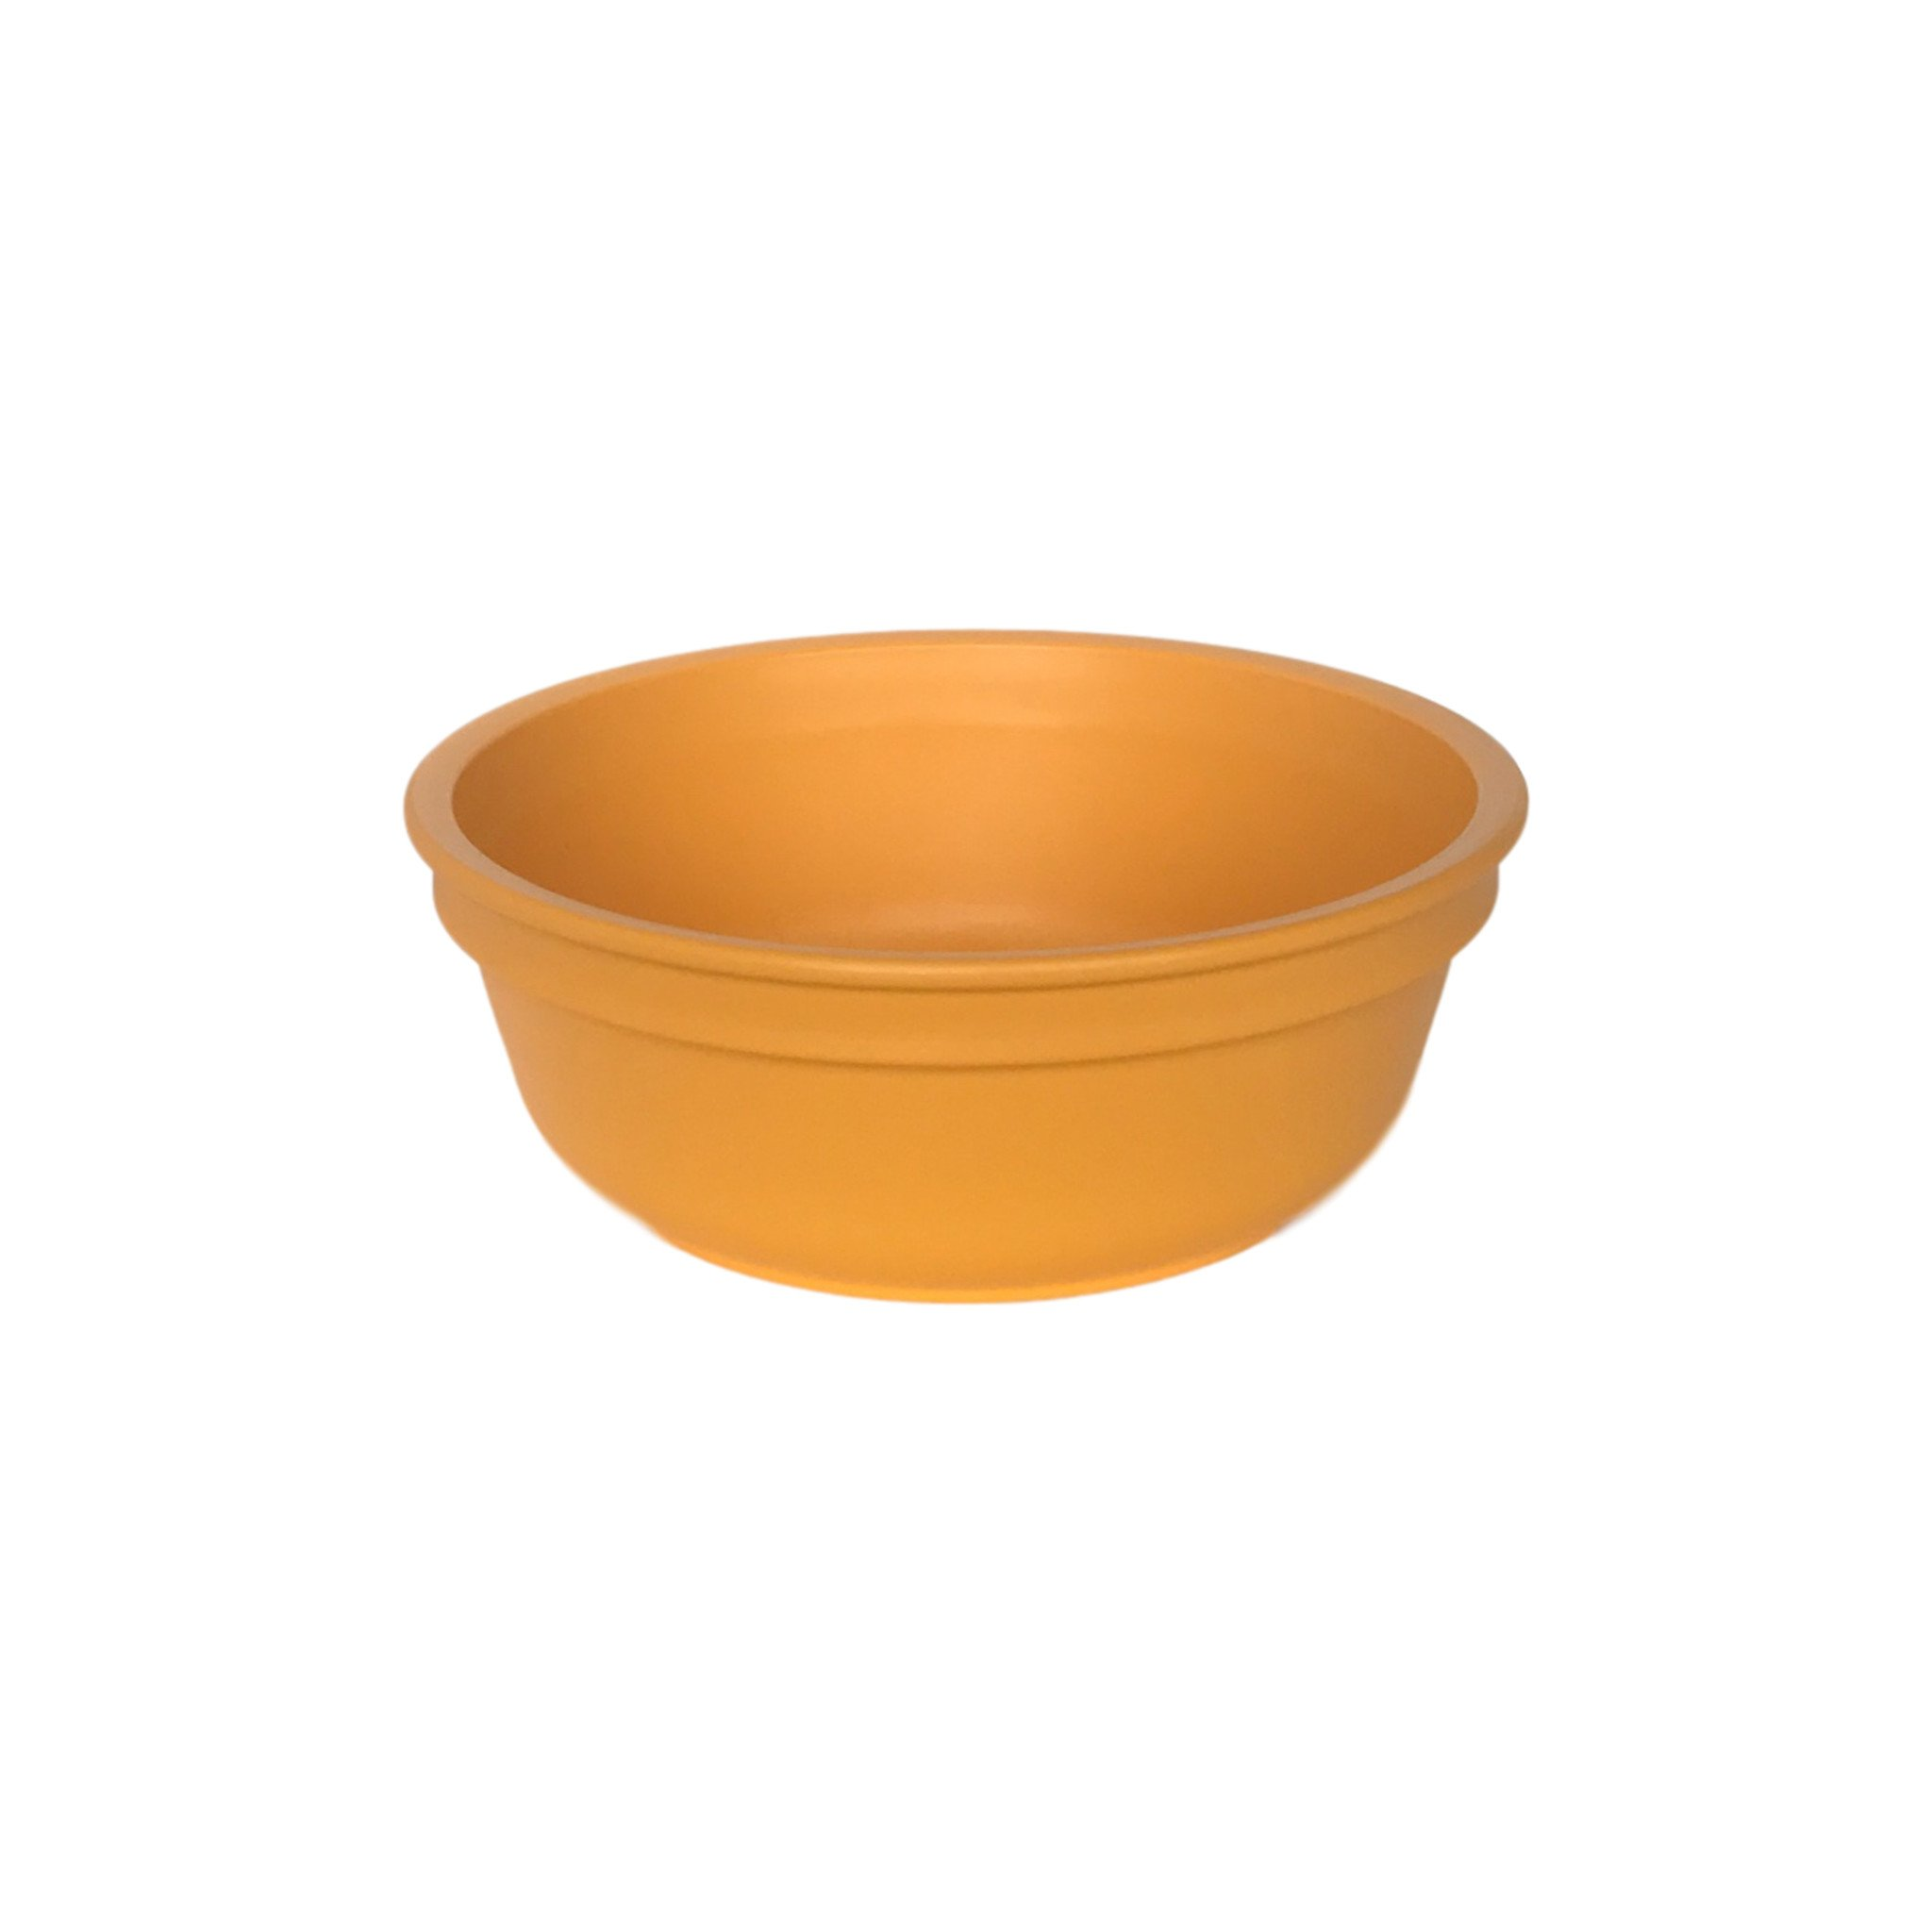 Replay Bowl Replay Lifestyle Sunny Yellow at Little Earth Nest Eco Shop